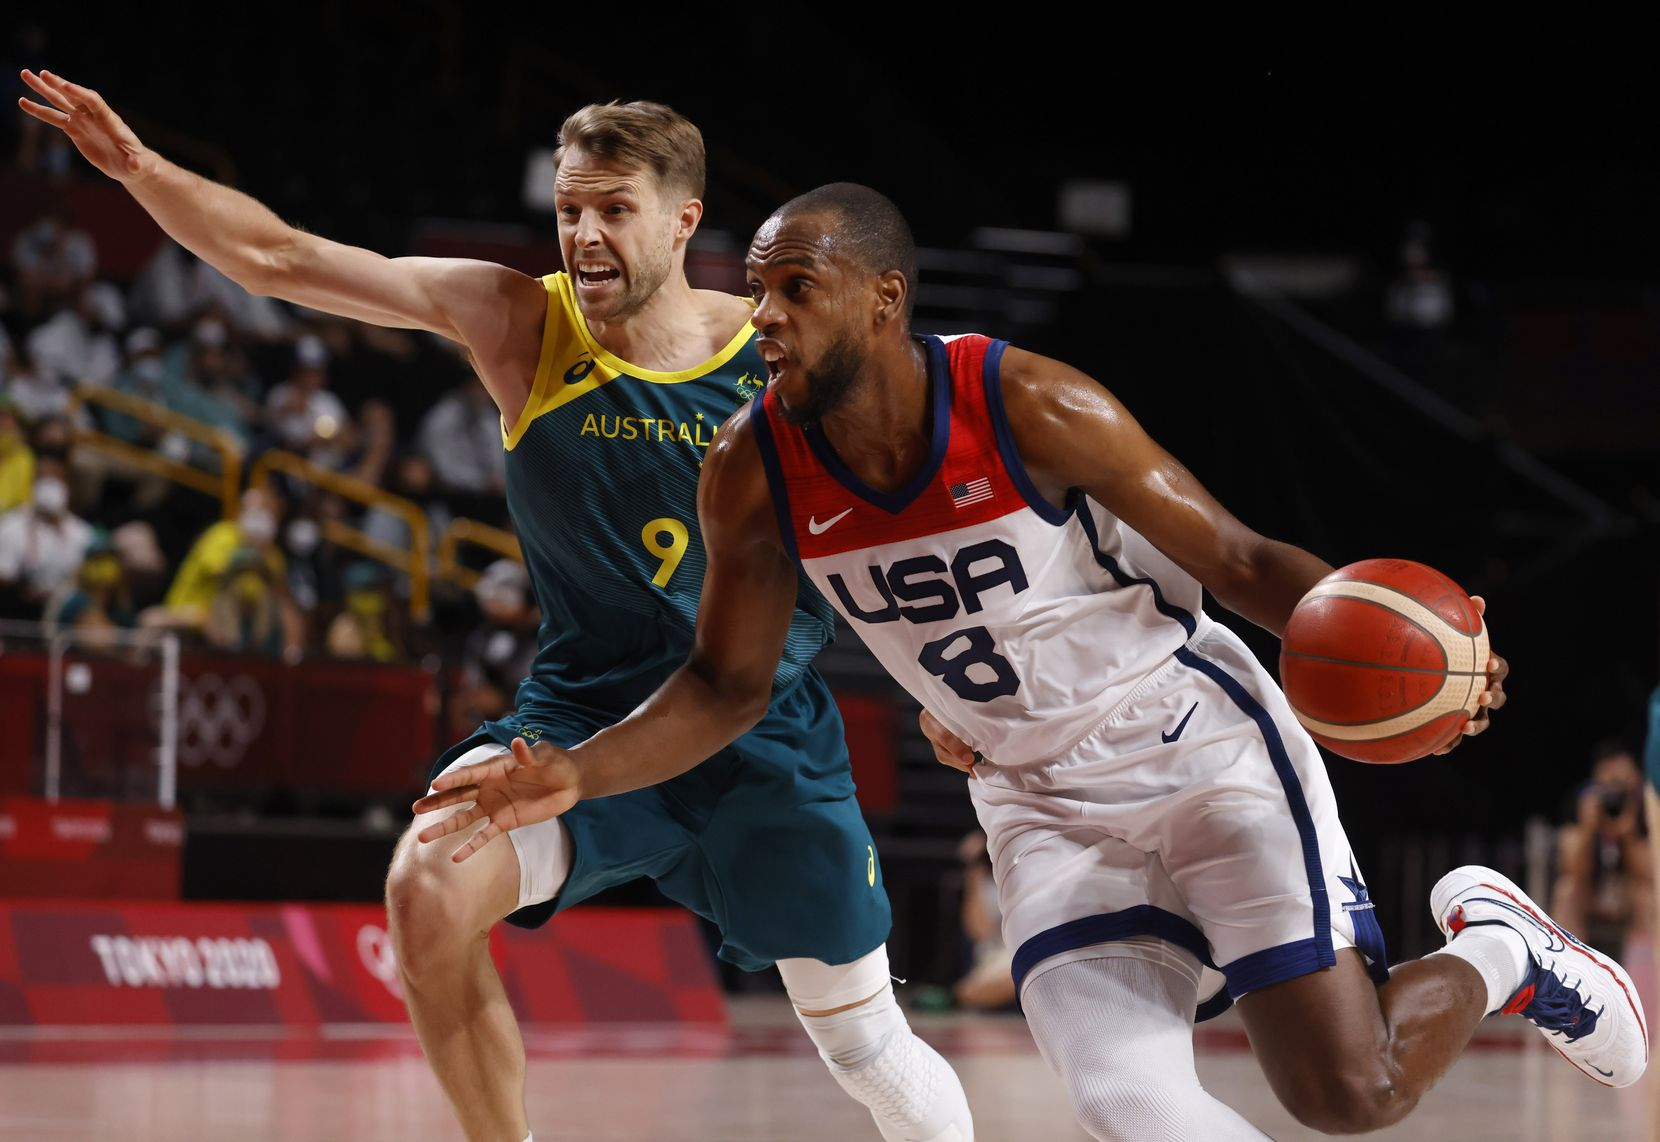 USA's Khris Middleton (8) drives on Australia's Nathan Tobey (9) during the first half of a men's basketball semifinal at the postponed 2020 Tokyo Olympics at Saitama Super Arena, on Thursday, August 5, 2021, in Saitama, Japan. USA defeated Australia 97-78 to advance to the gold medal game. (Vernon Bryant/The Dallas Morning News)